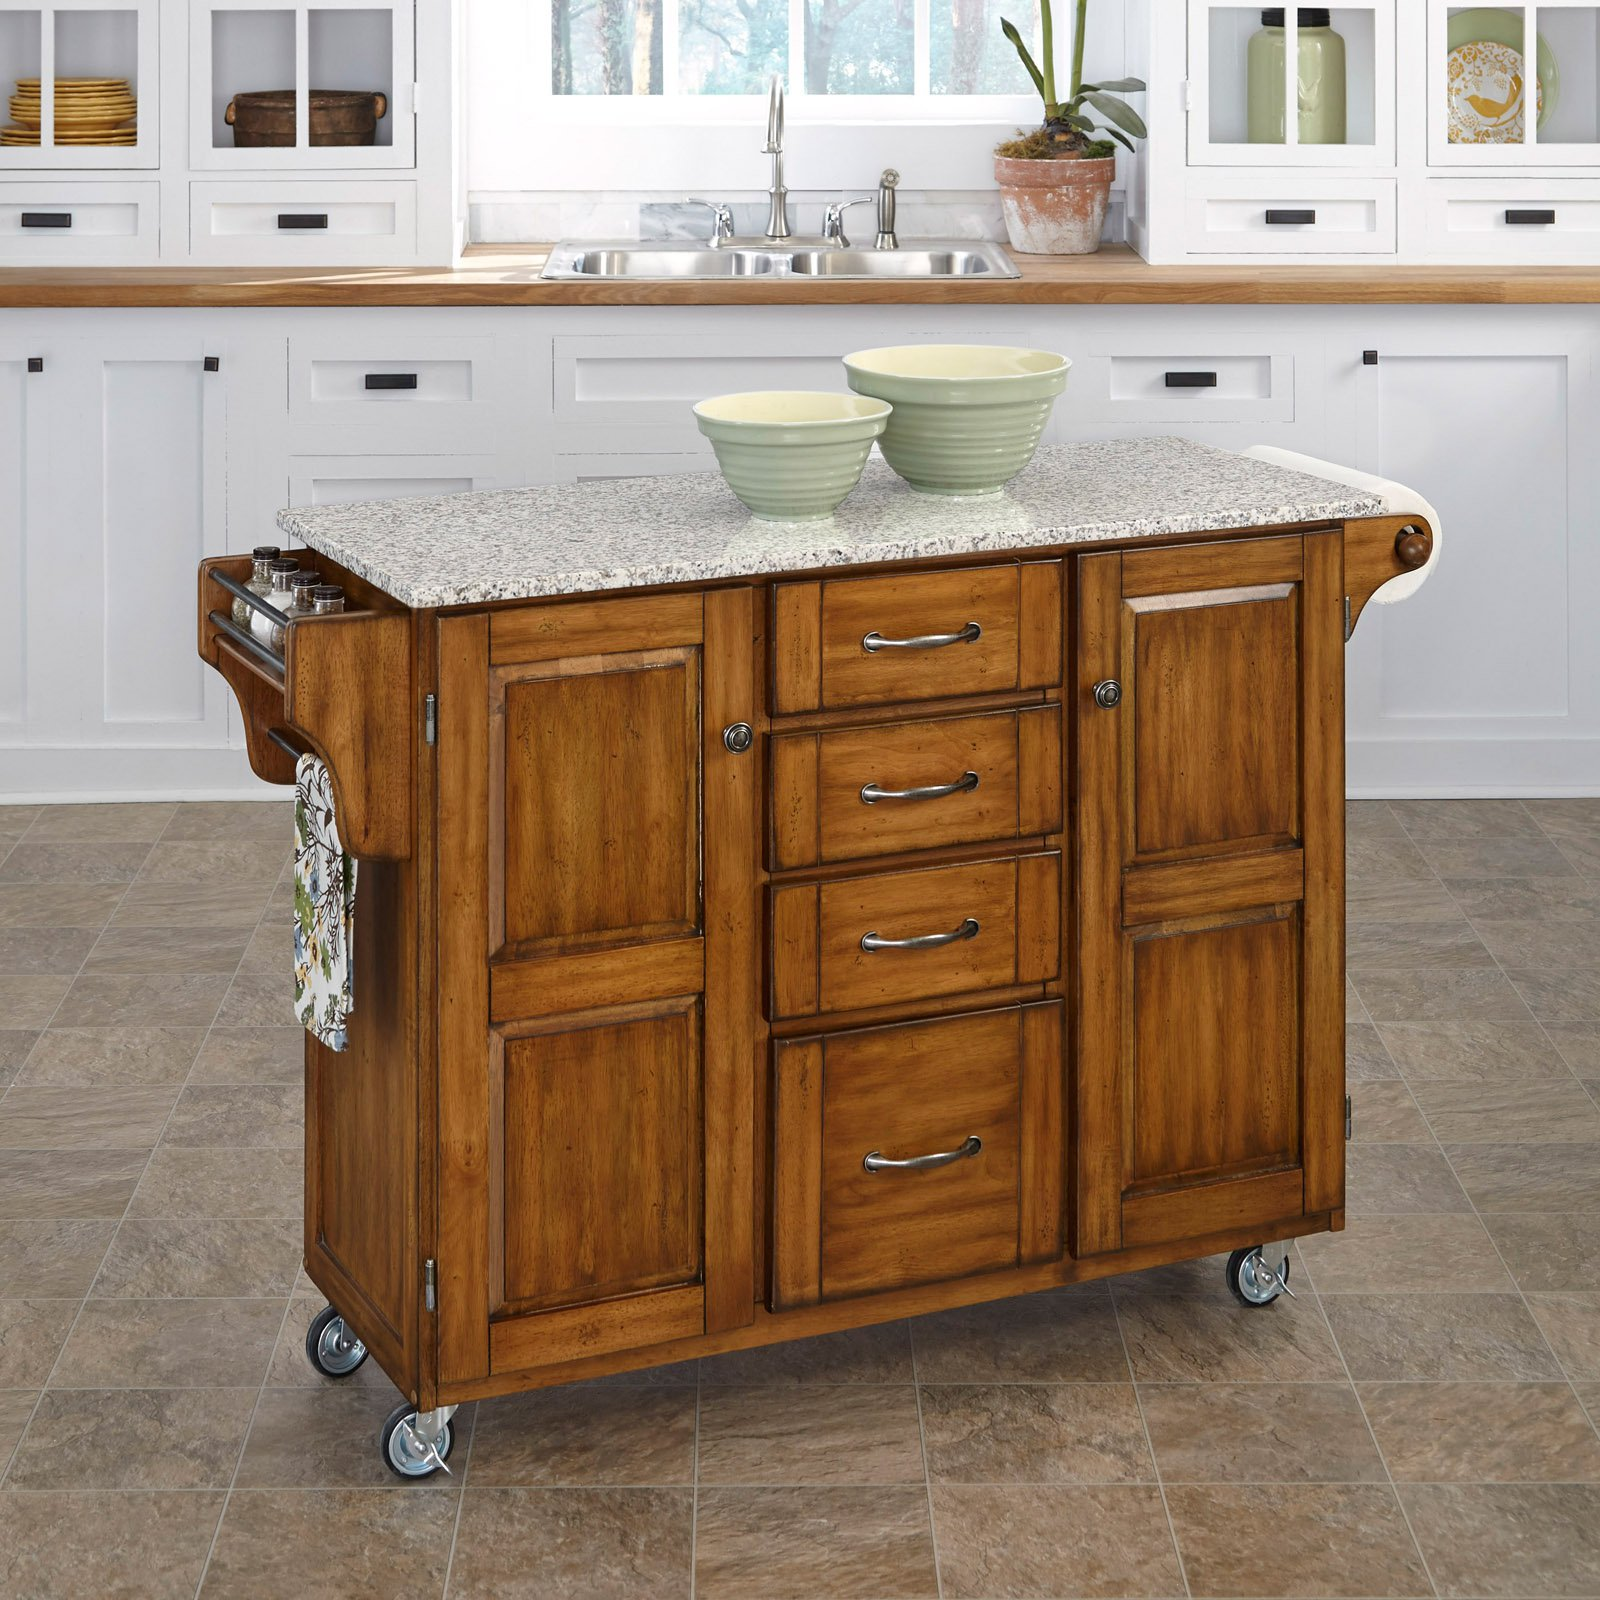 Home Styles Large Kitchen Cart, White / Black Granite Top   Walmart.com